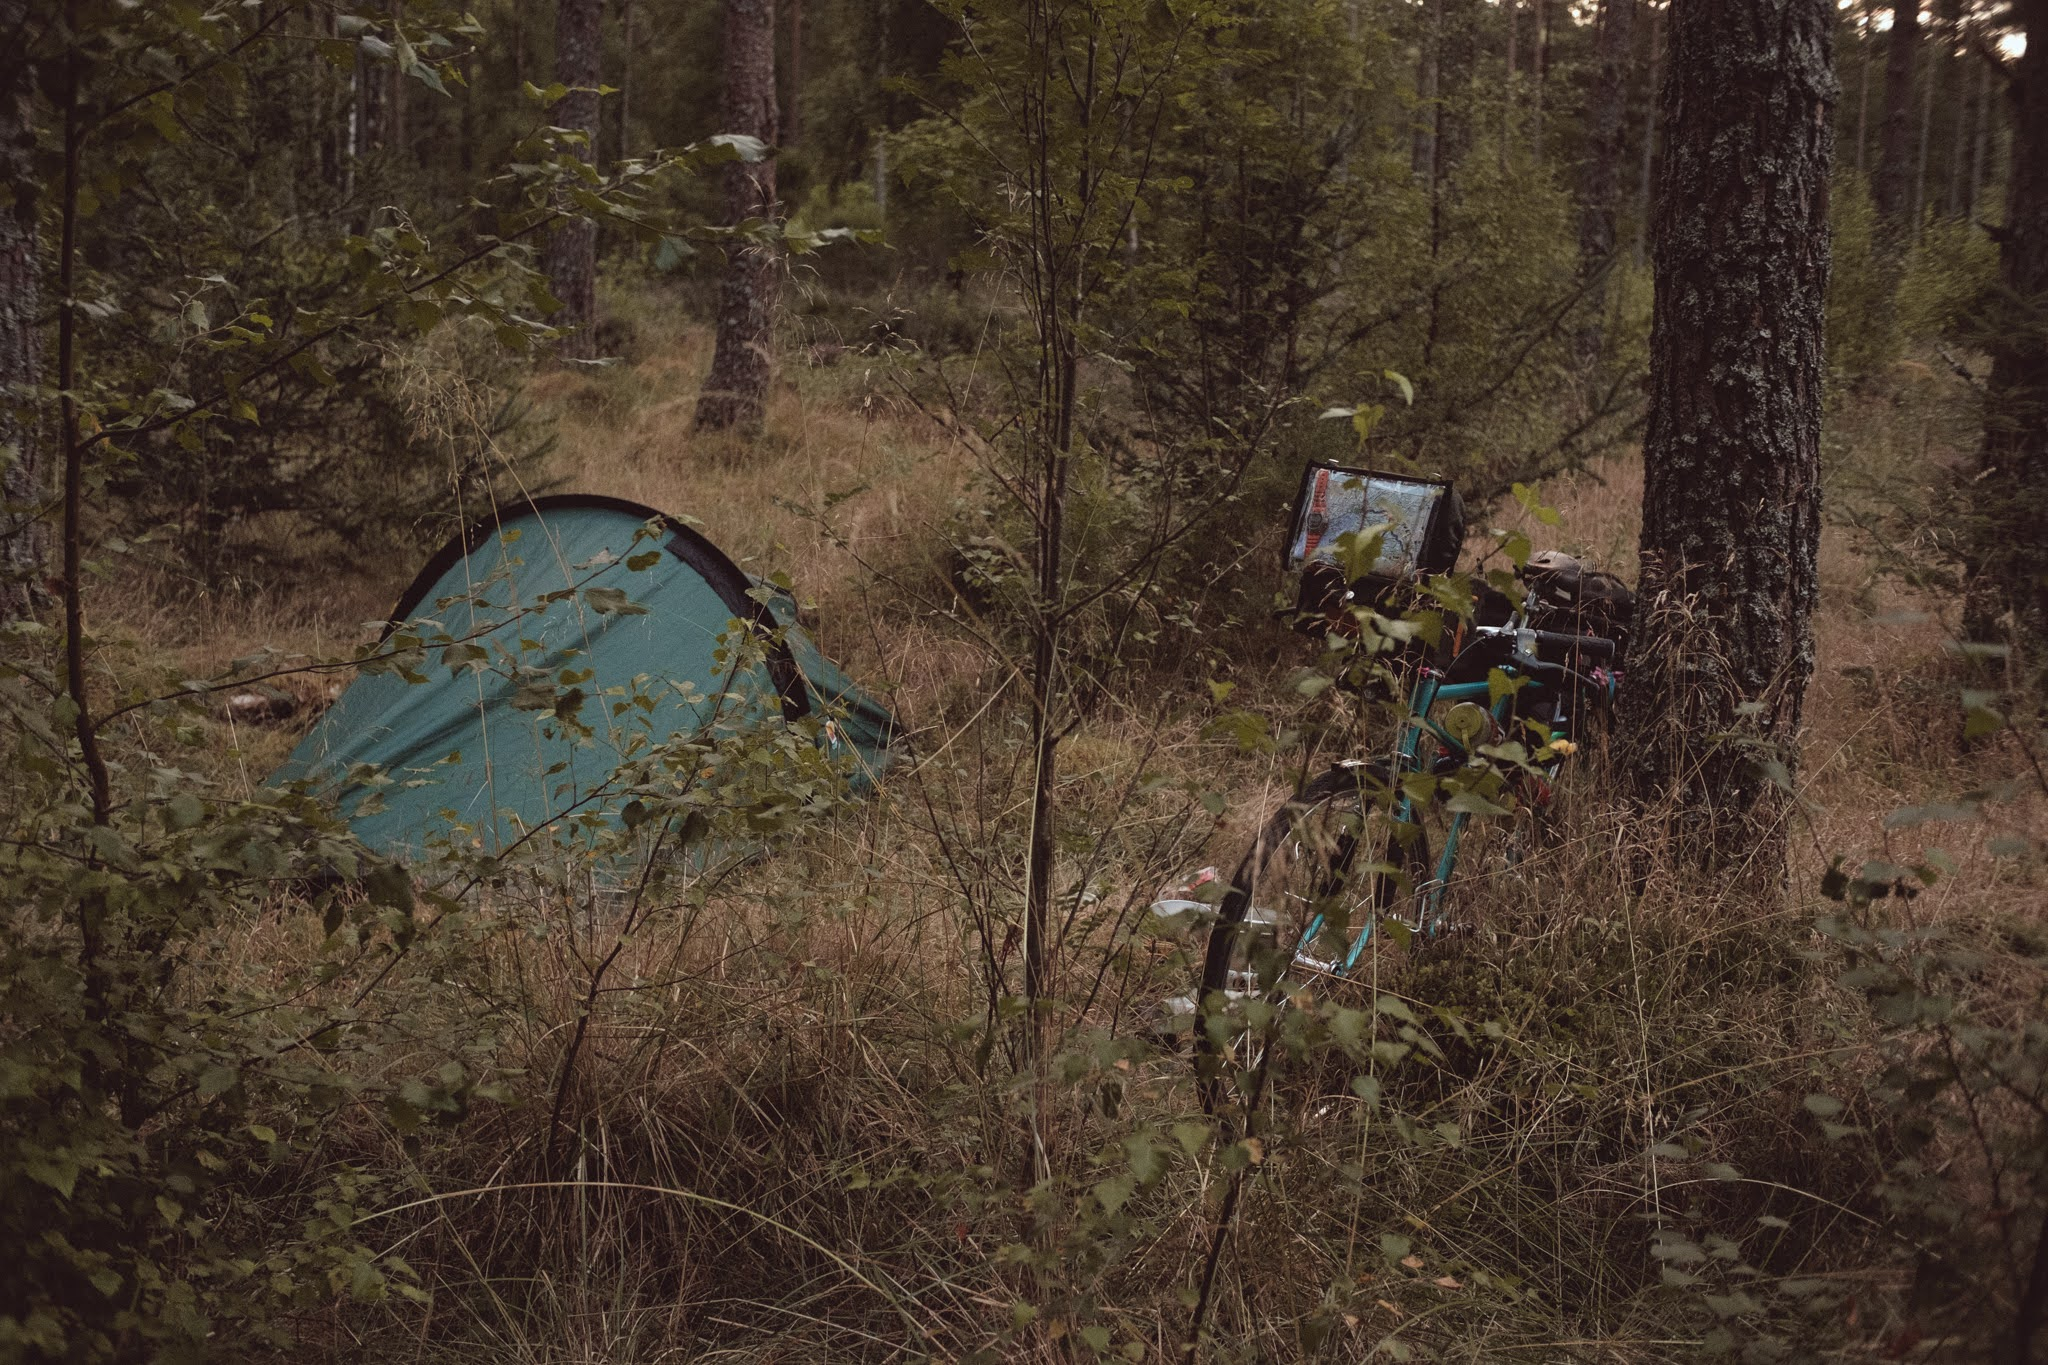 Wild Country Zephyros Compact 2 tent review